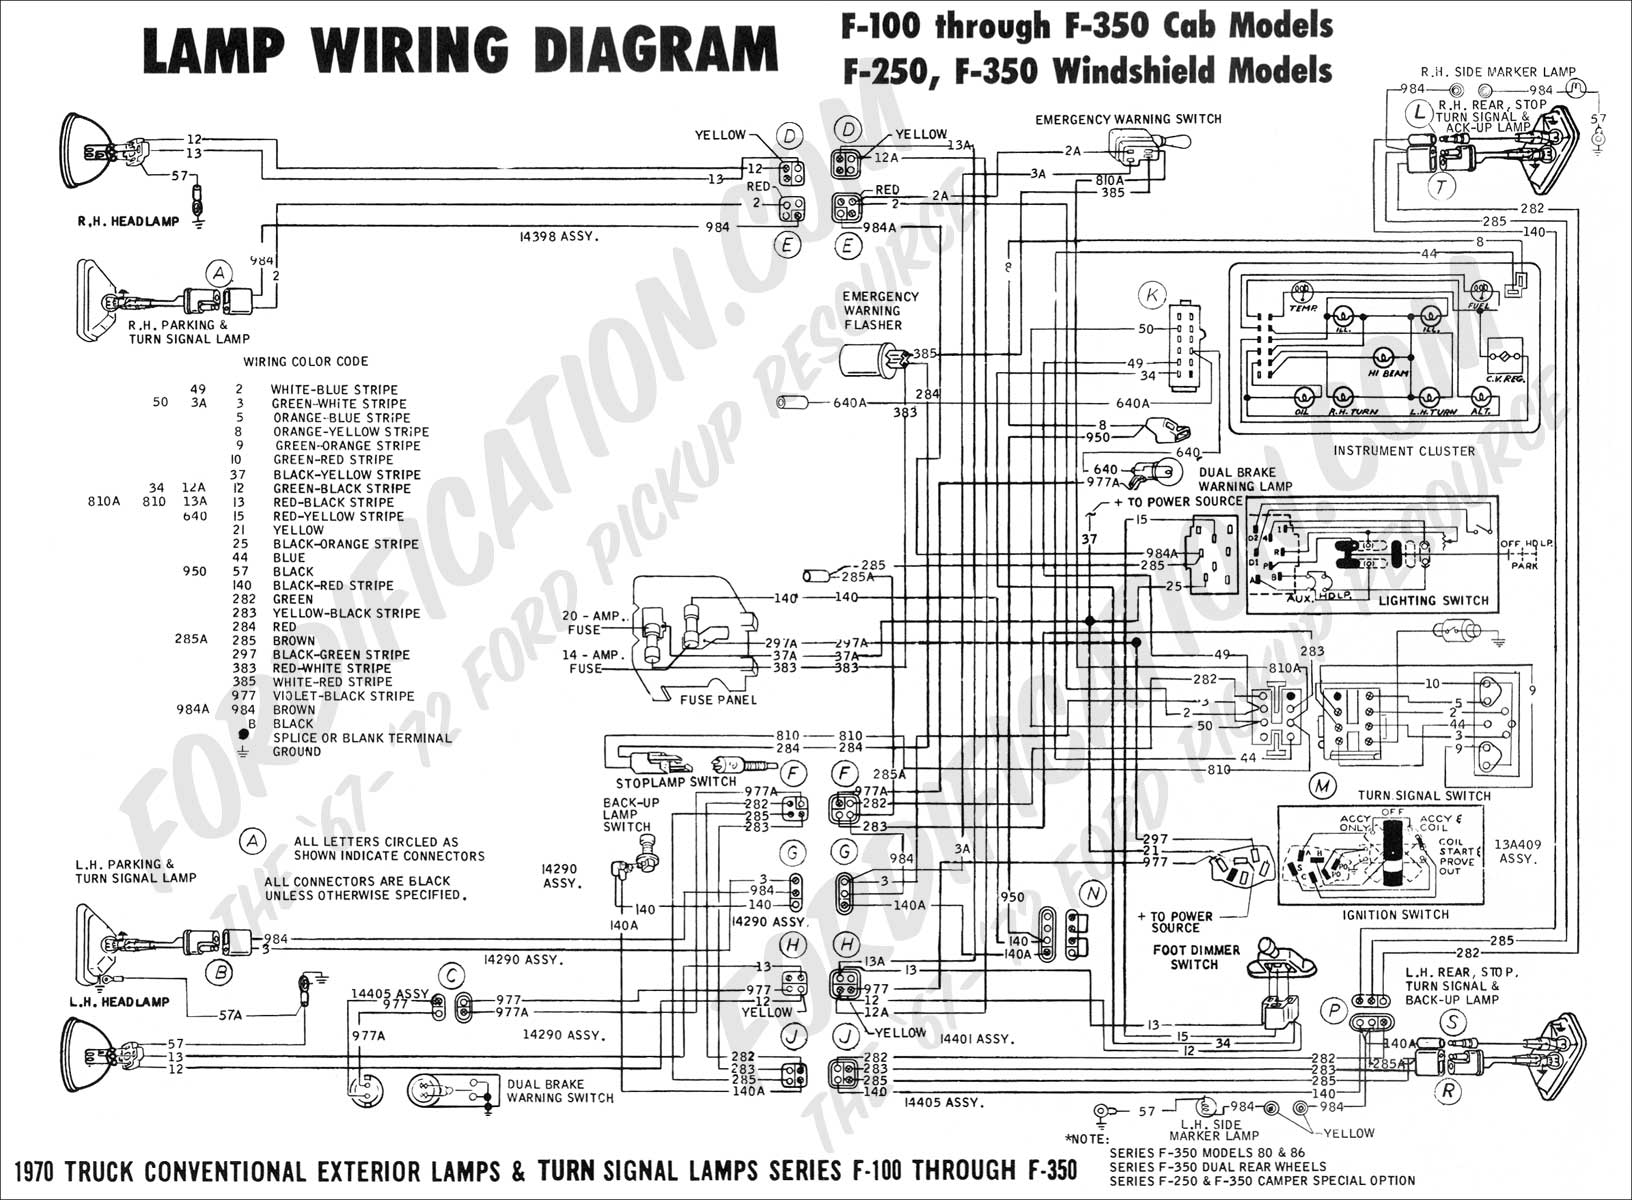 wiring diagram_70ext lights01 ford truck technical drawings and schematics section h wiring wiring harness for 1971 ford f100 at panicattacktreatment.co